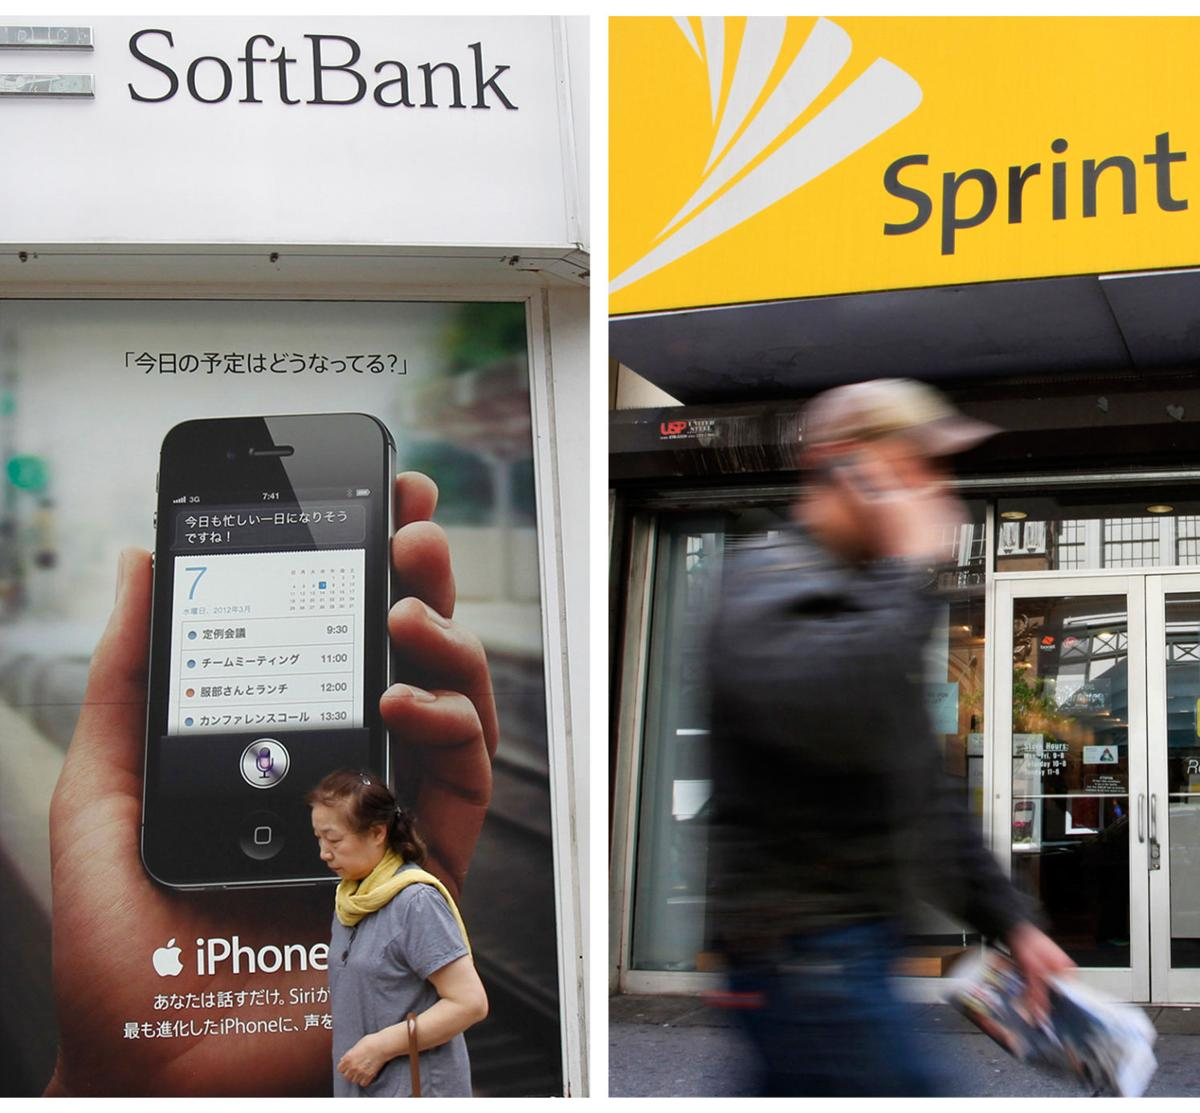 Sprint eyes deal with Japan carrier